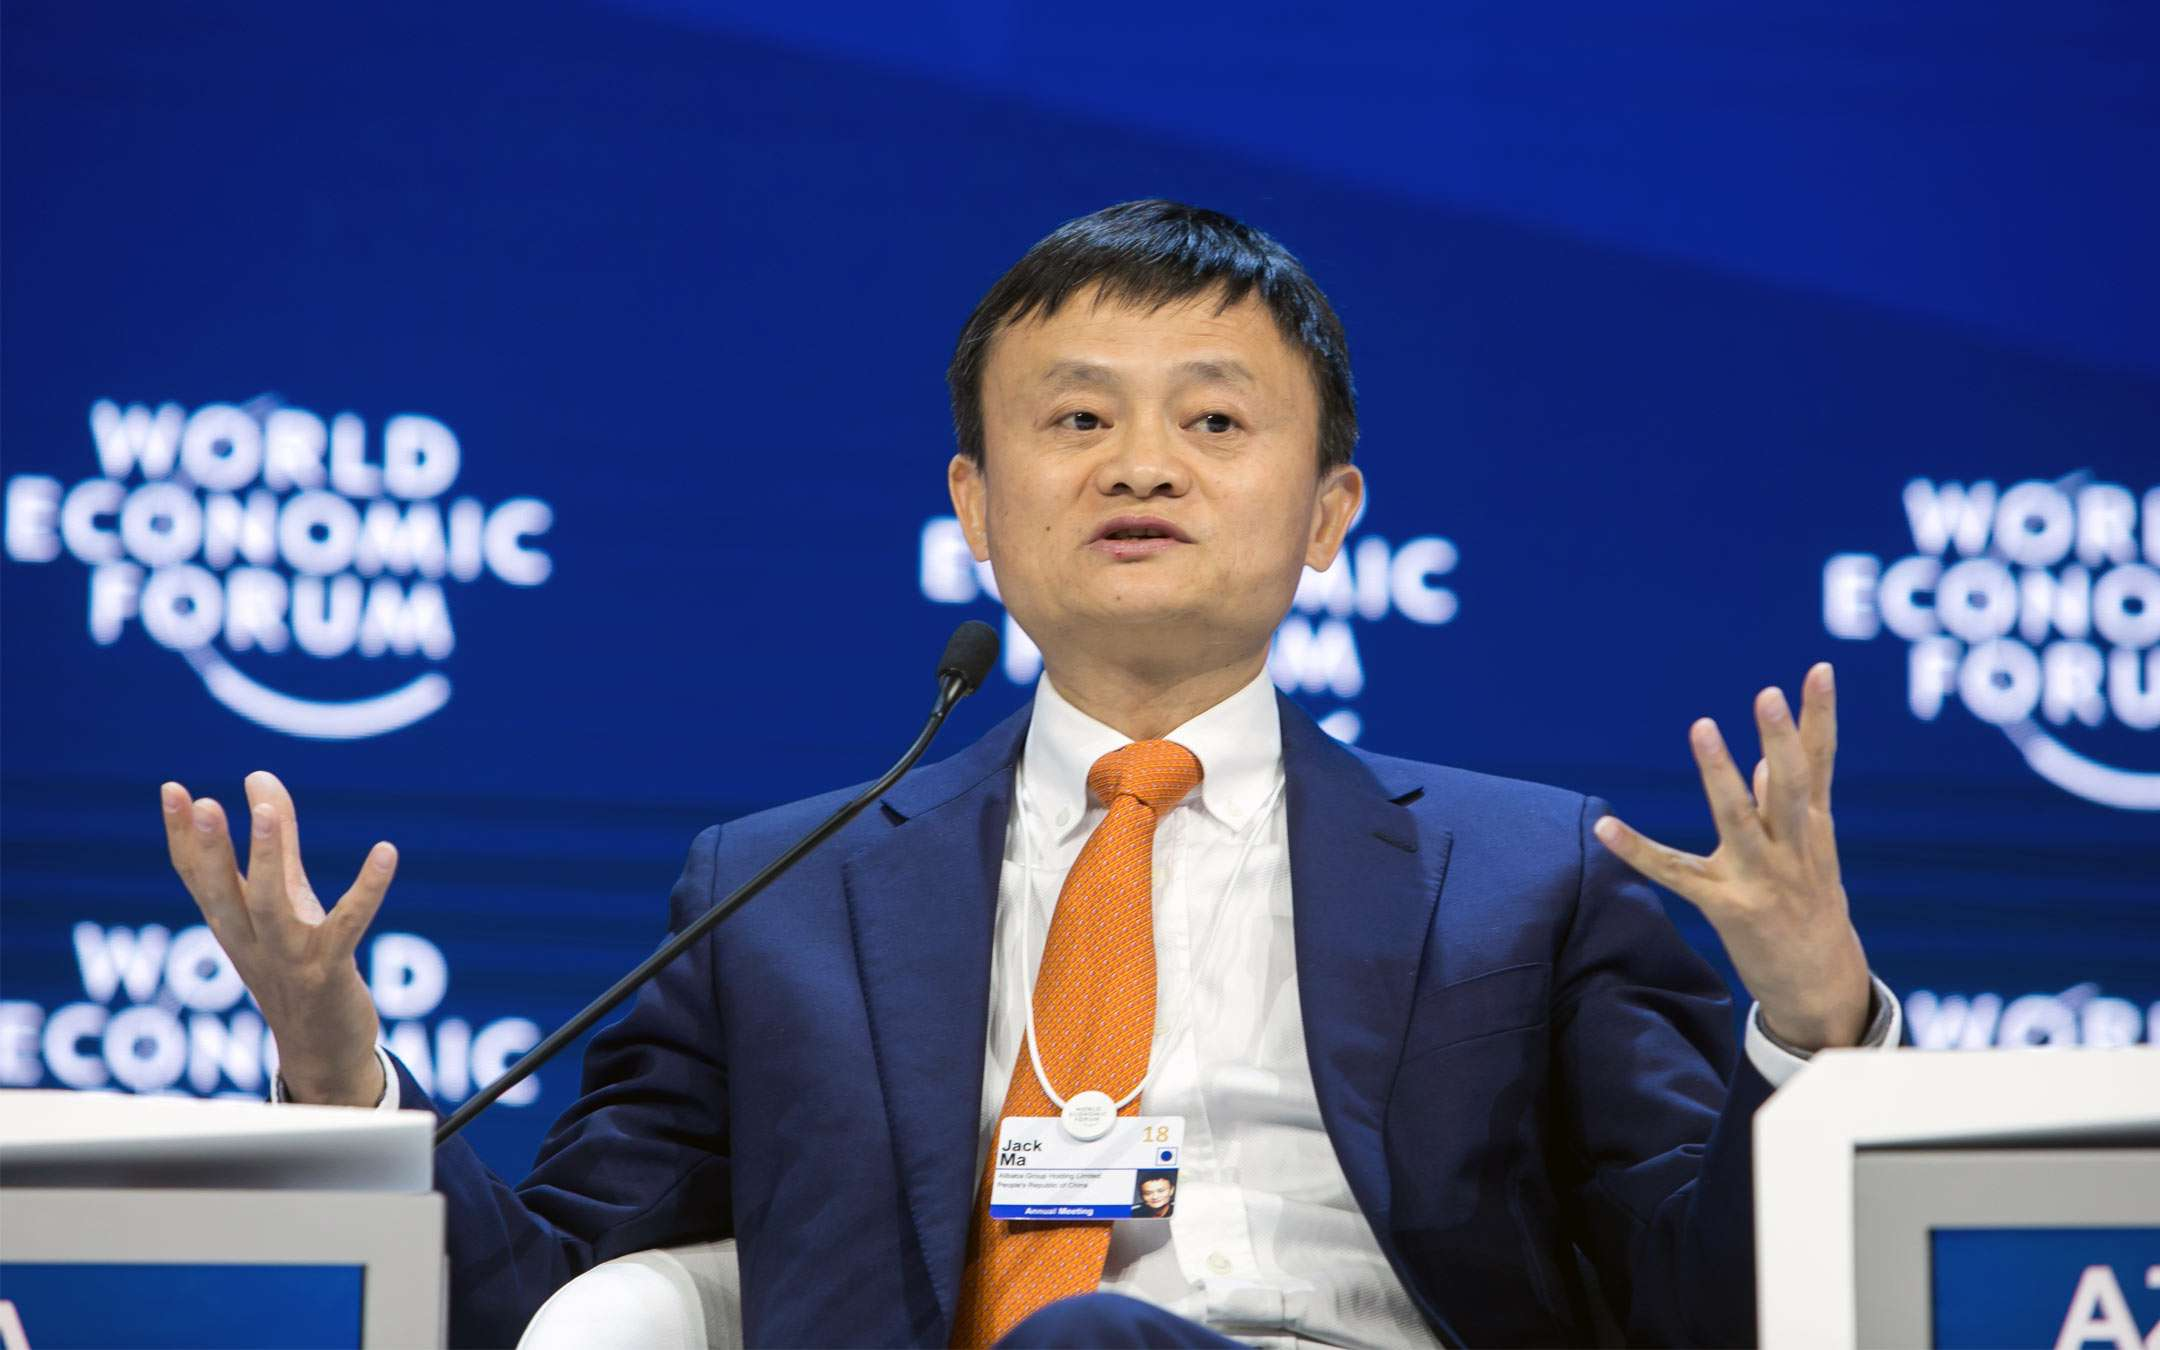 What happened to Jack Ma? Not seen since October